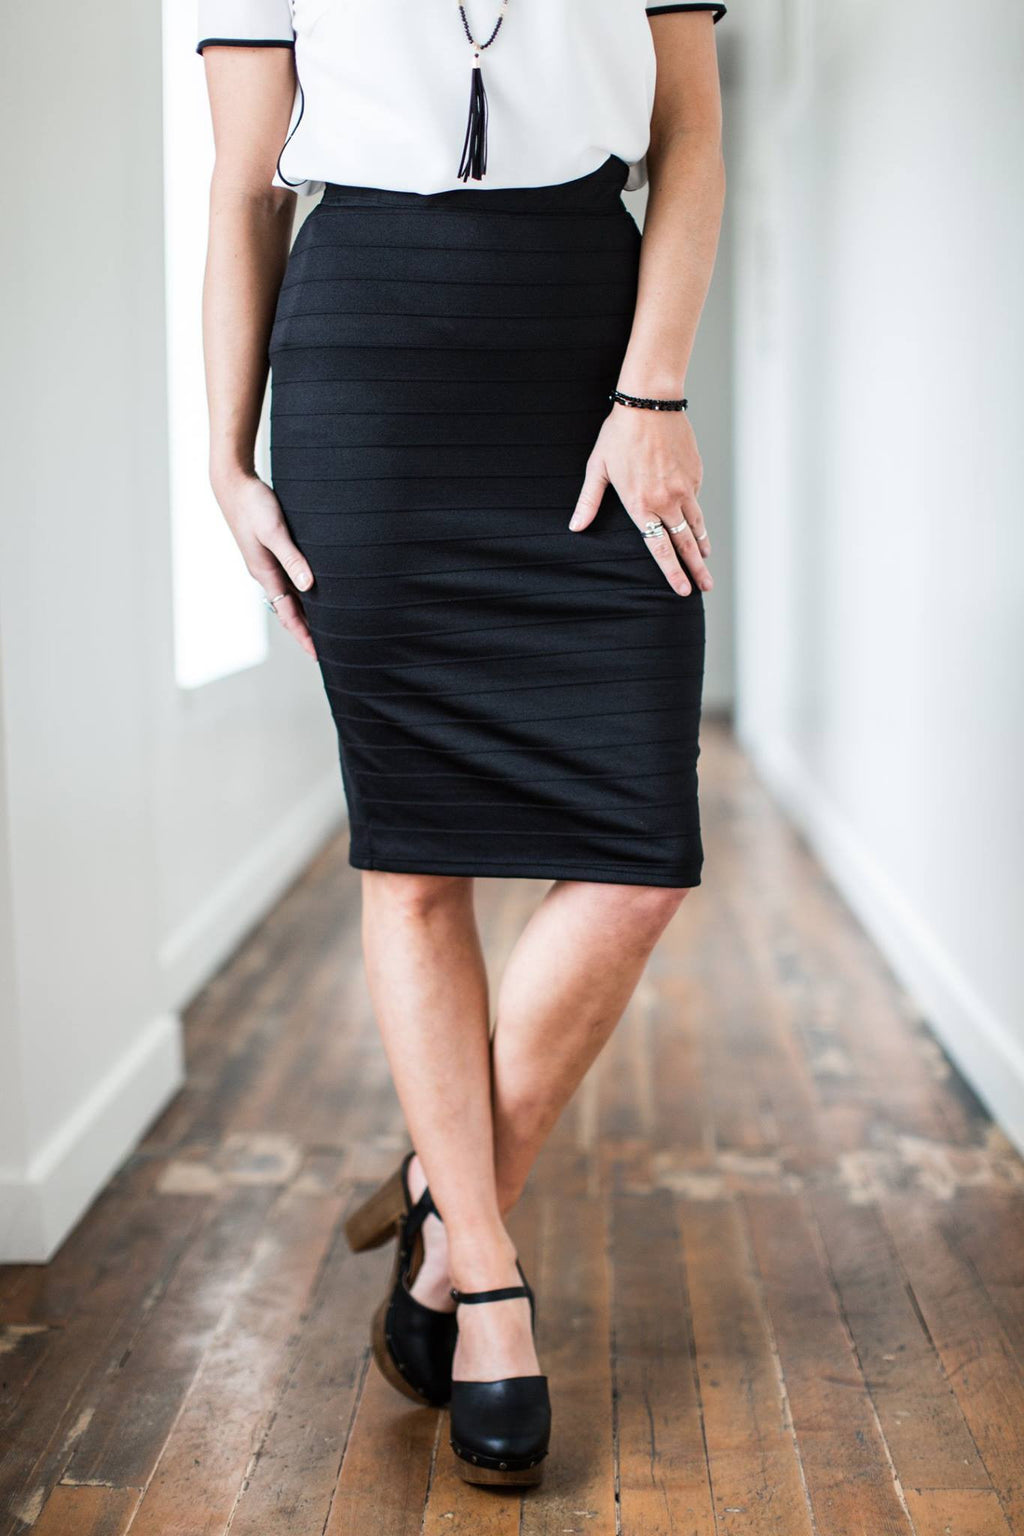 Chandler Ribbed Pencil Skirt in Black - MOB Fashion Boutique